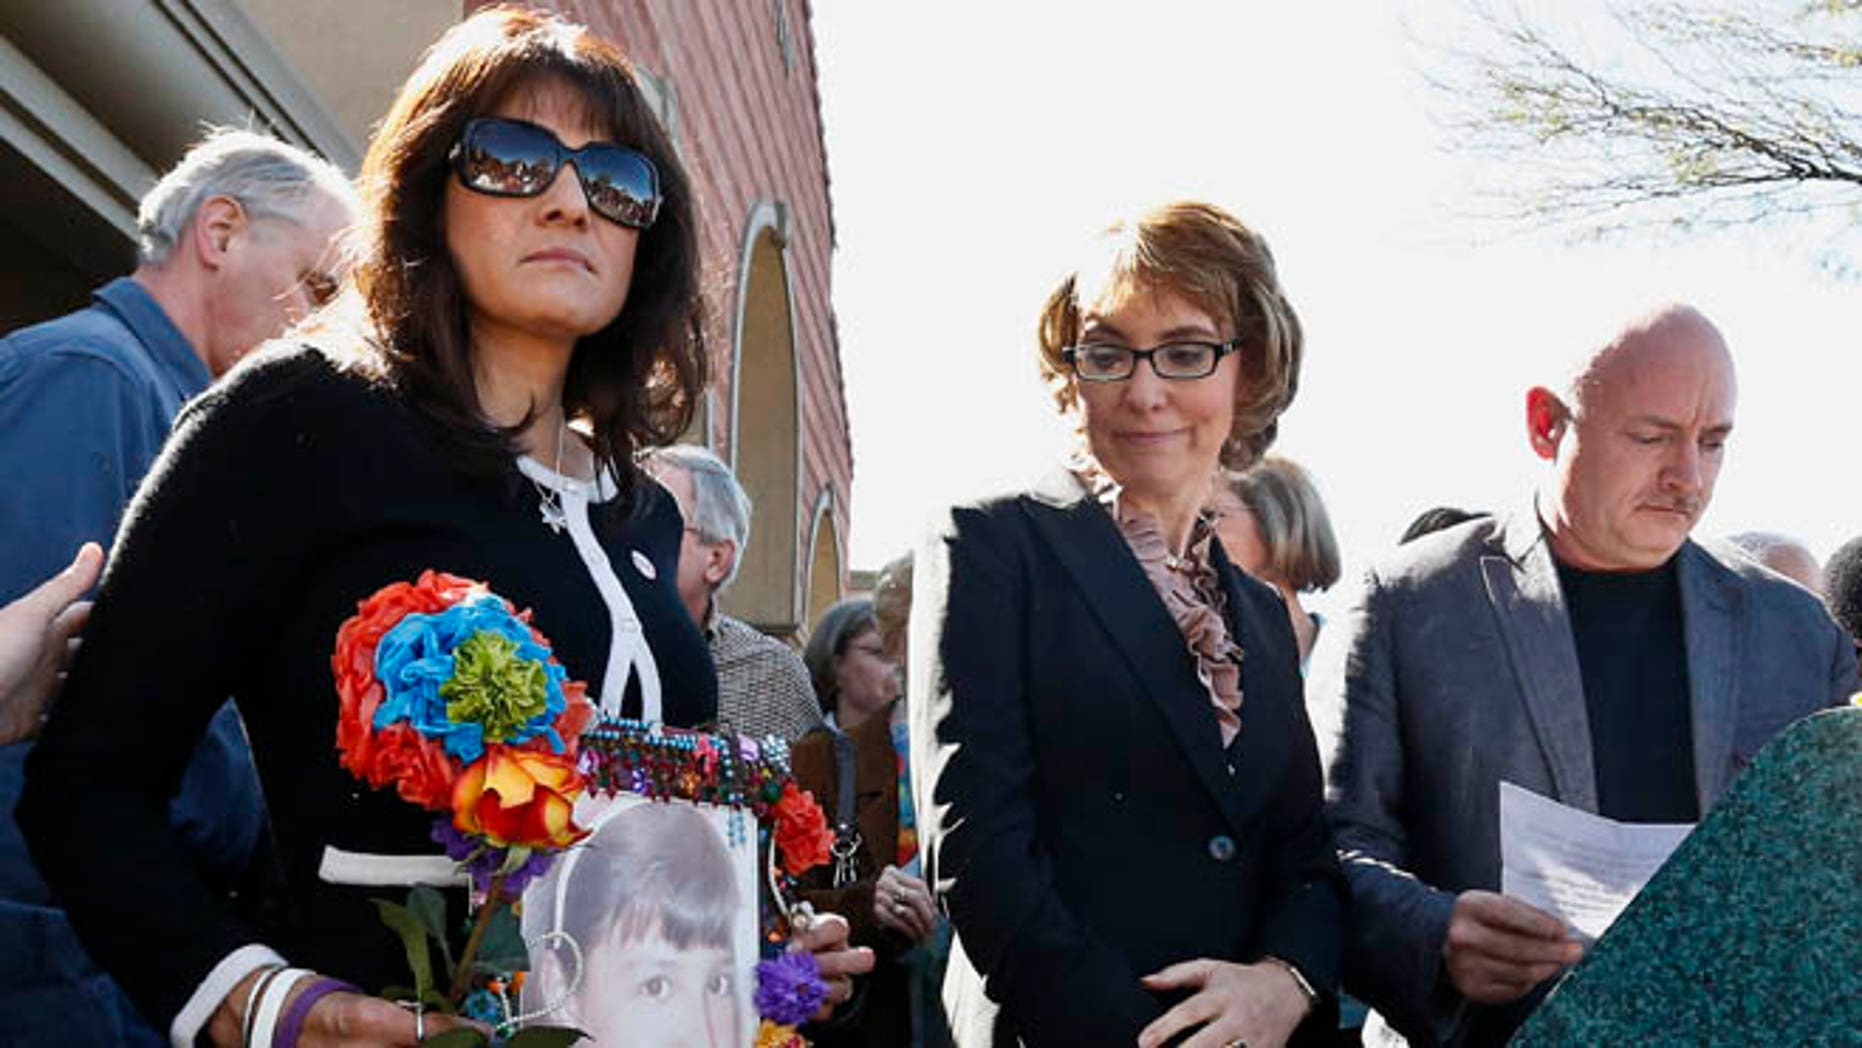 March 6, 2013: In this file photo, former Rep. Gabrielle Giffords, center, looks at a photo of Christina-Taylor Green, as it is held by her mother Roxanna Green, left, as Giffords' husband Mark Kelly prepares to speak at the site of a shooting that left her critically wounded, and many others killed in Phoenix.